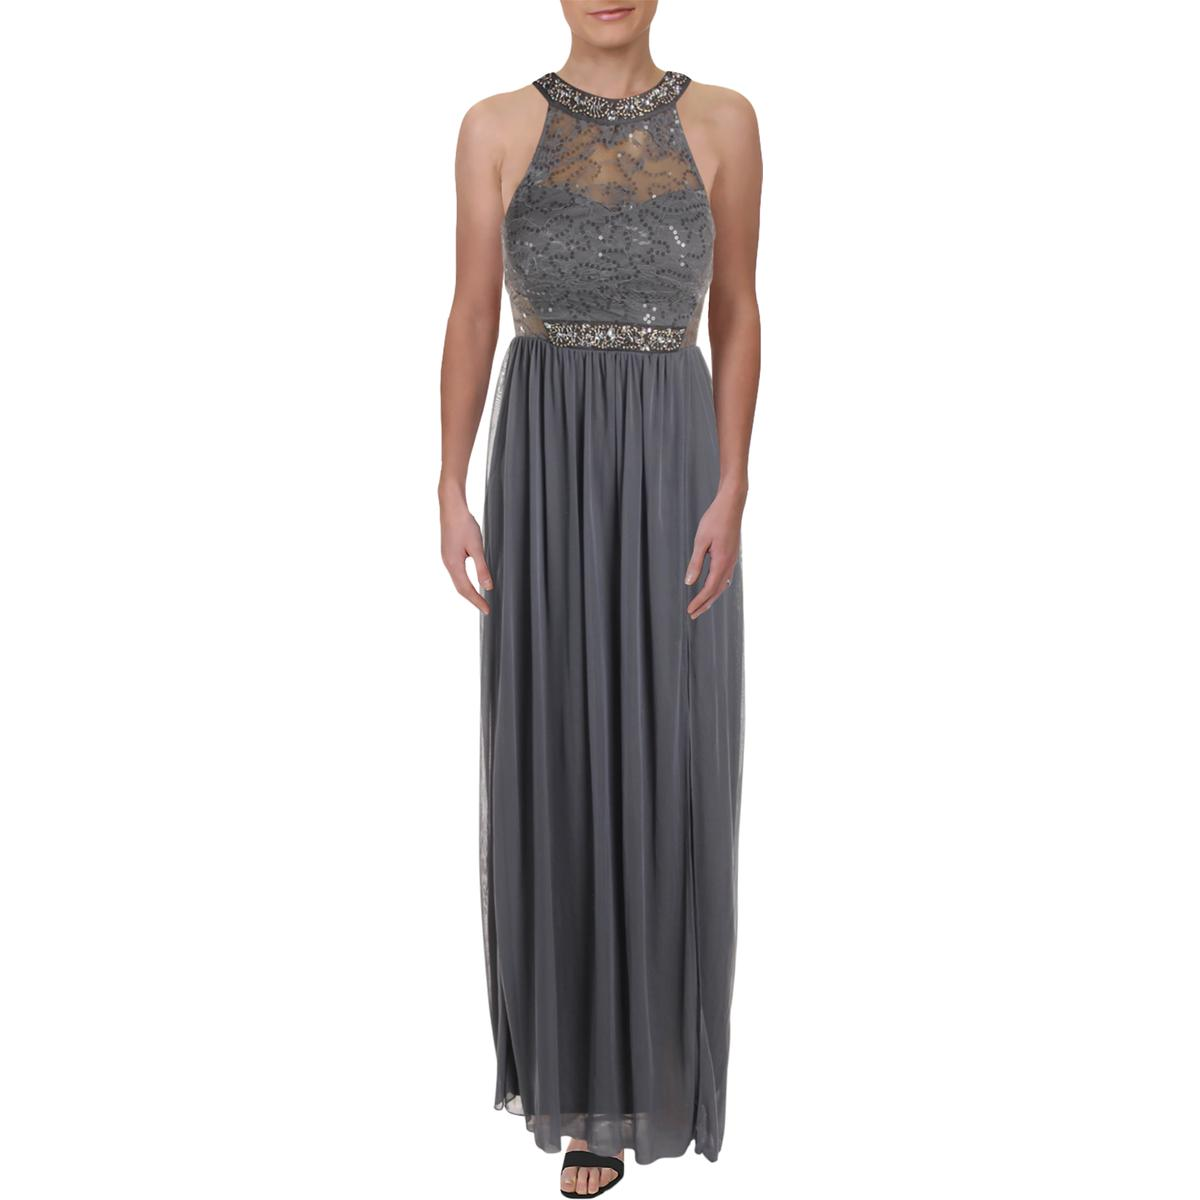 Tadashi Shoji Womens Sequined Formal Embroidered Evening Dress Gown BHFO 7462